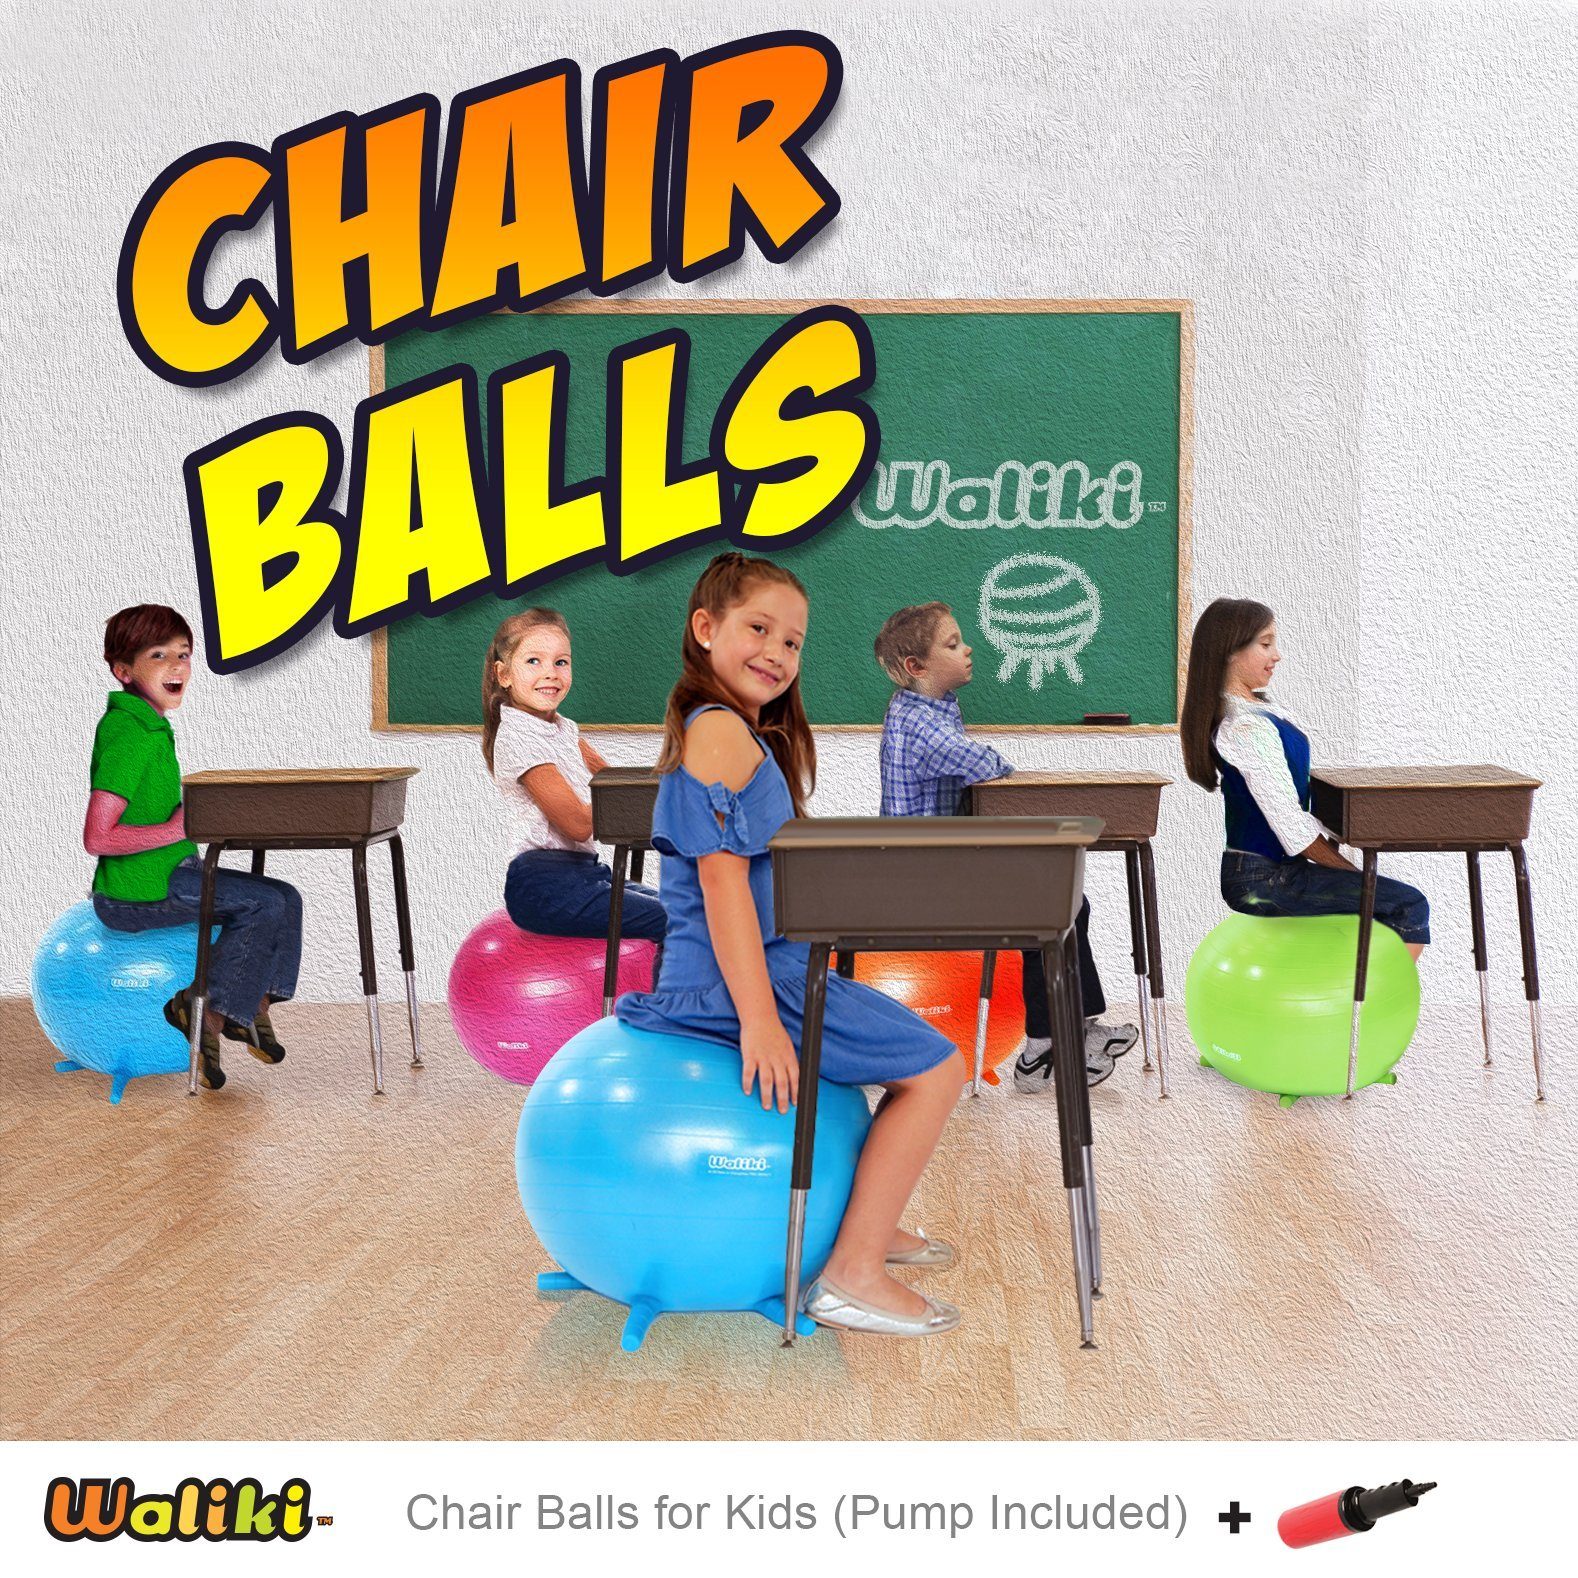 WALIKI TOYS Children's Chair Ball with Feet, Alternative Classroom Seating (Inflatable Balance Ball Chair With Stability Legs for School, Pump Included, 18''/45CM, Orange) by WALIKI (Image #7)